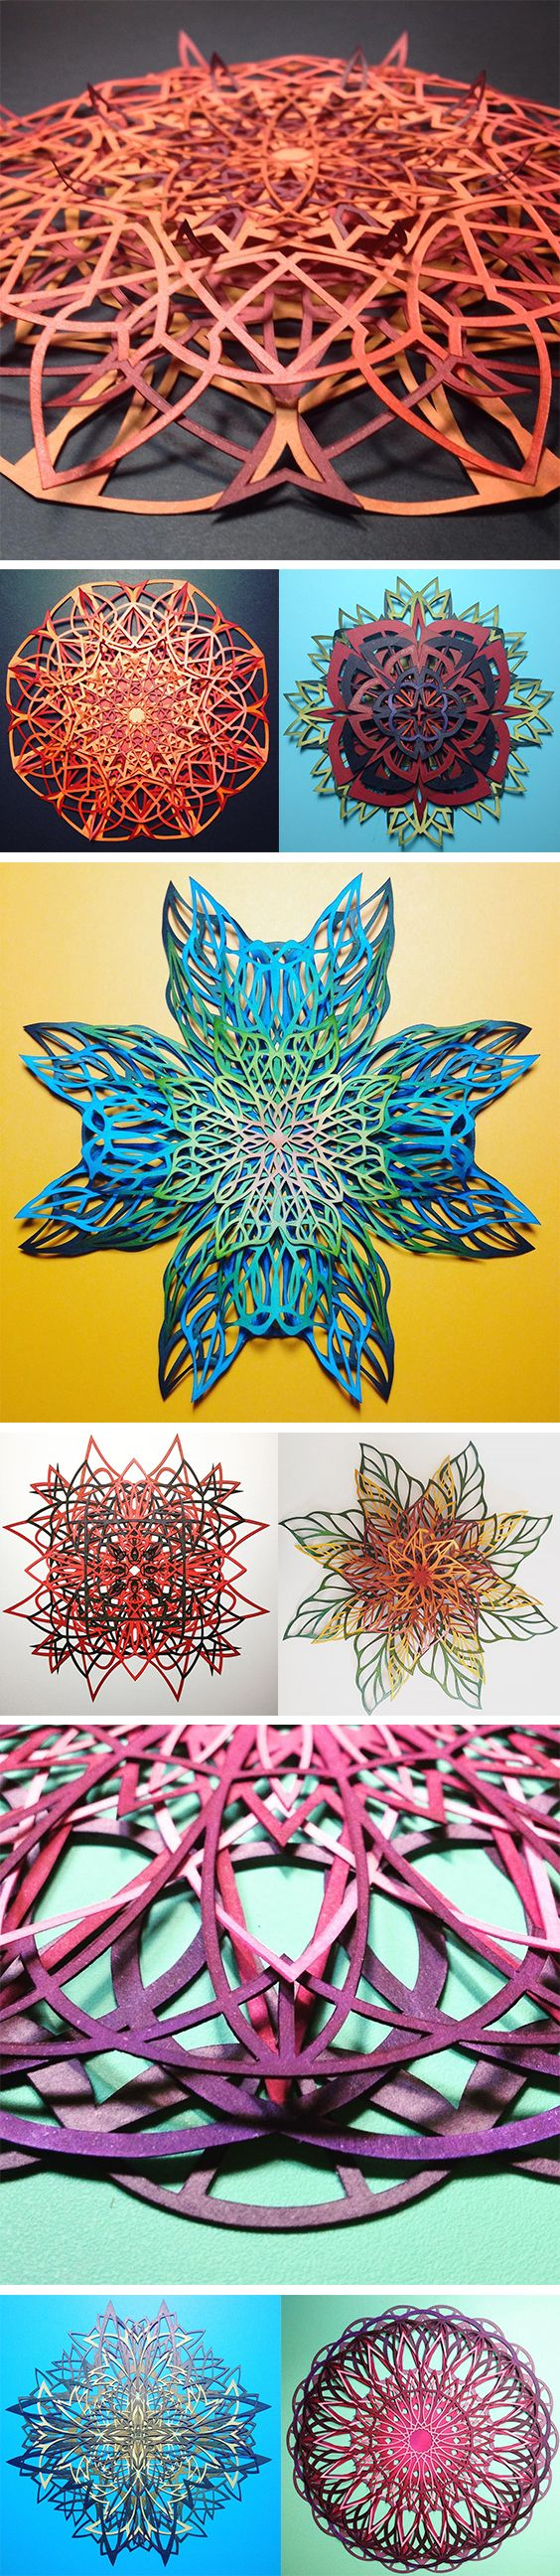 Click for more pics! | Intricate Interlocked Geometric Cut Paper Sculptures Inspired by Science and Nature by Chrissie Hart #paperart #cutpaper #sculpture